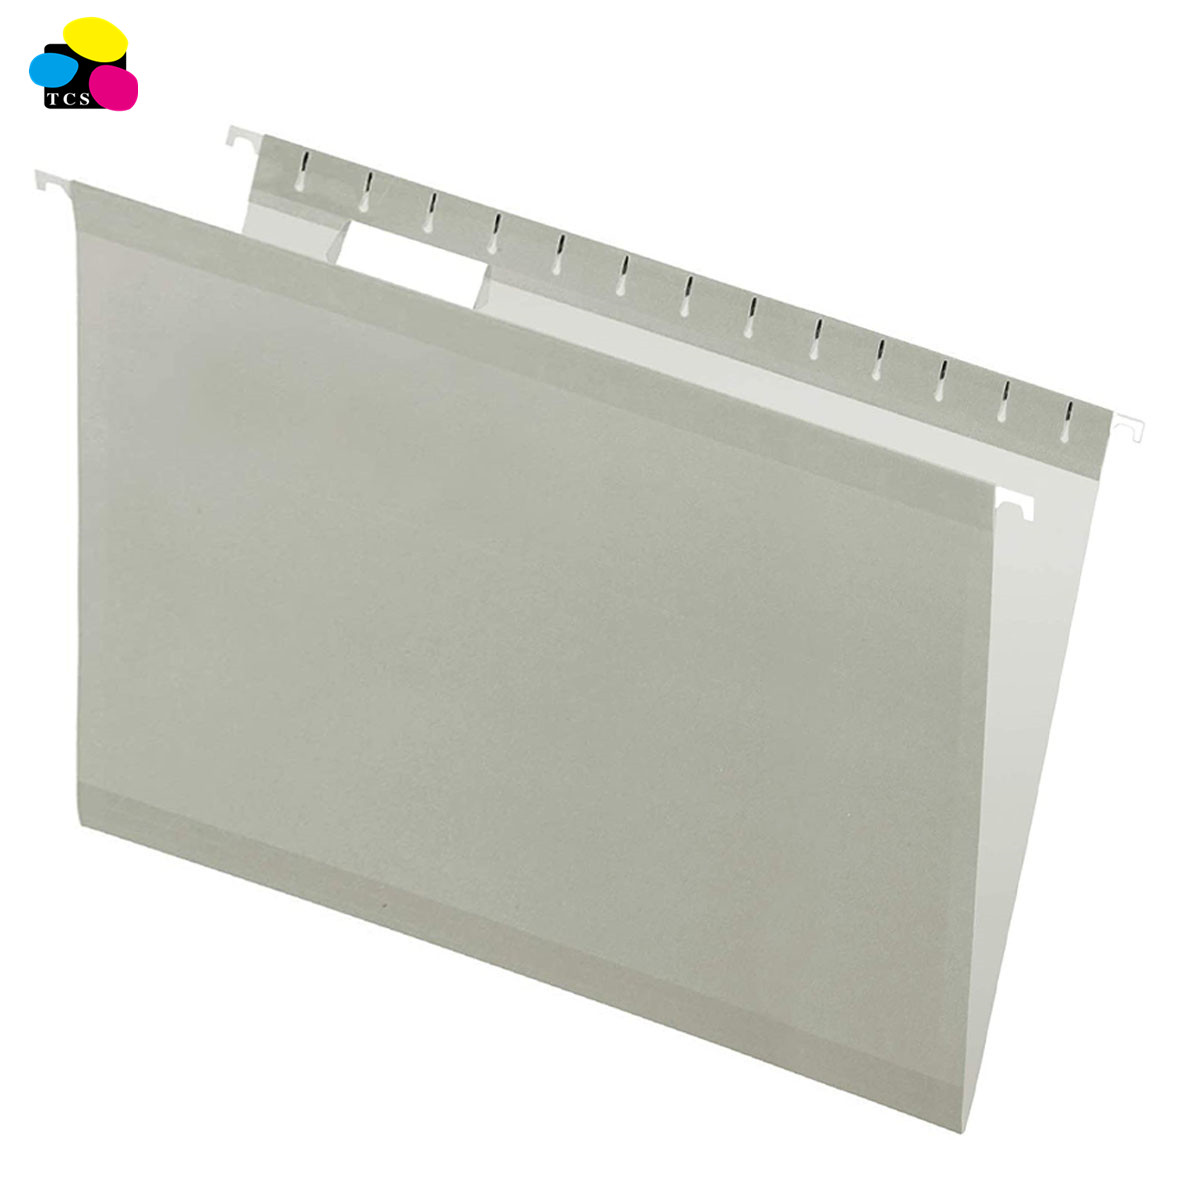 office supply 1/5 Cut 8 1/2in. x 14in Legal Size2-Tone Gray Hanging File Folders